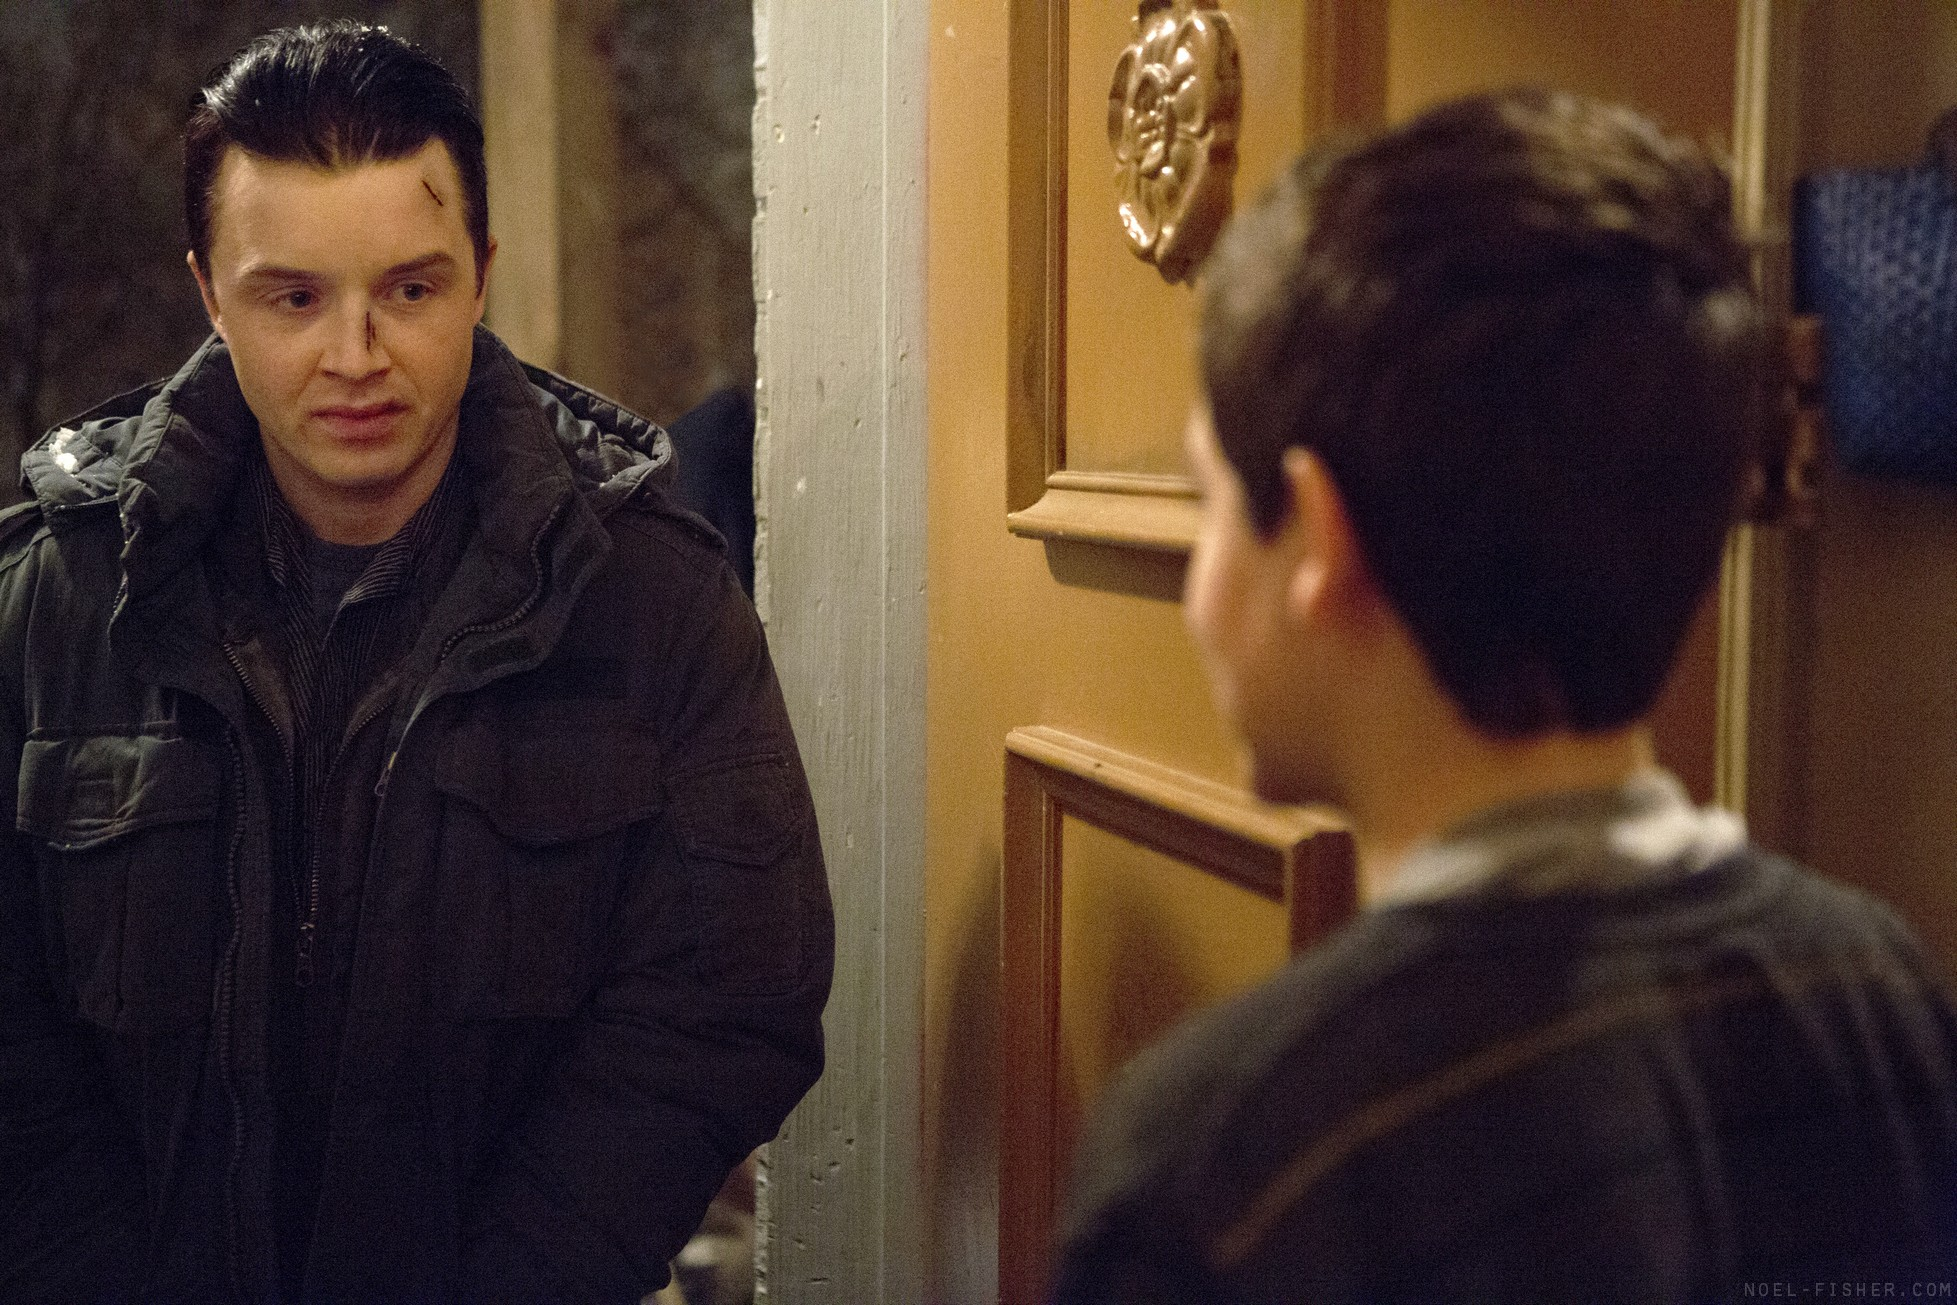 Article: 'Shameless': Mickey Comes Out, Crushing Gay Stereotypes ...